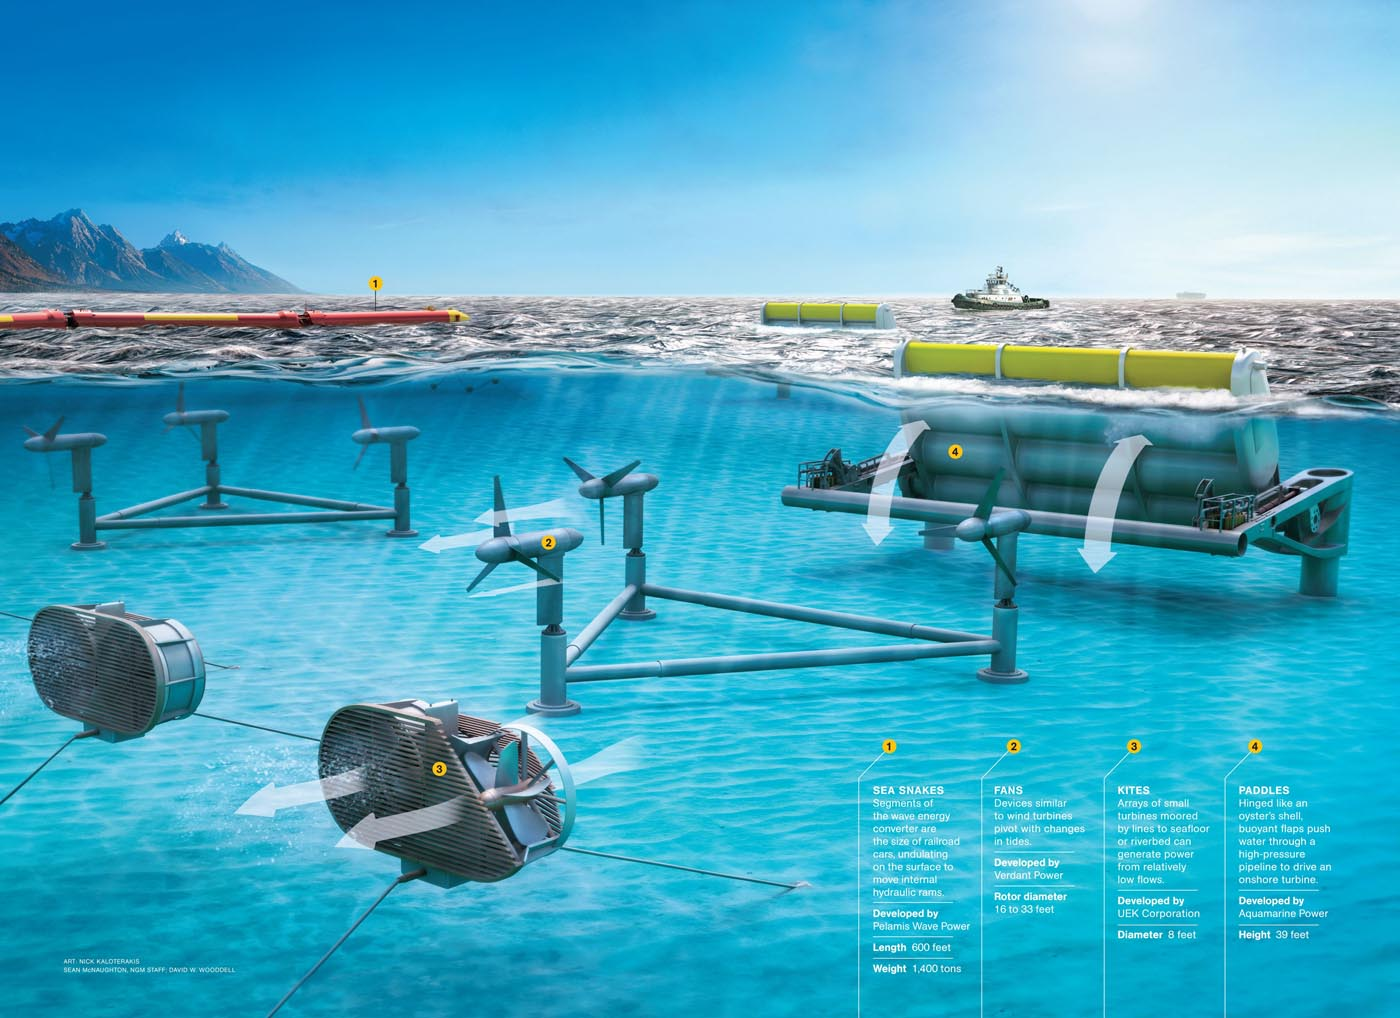 ocean wave energy as an alternative How efficient is wave energy well, ocean waves are the biggest source of renewable energy in fact, if wave energy can be harnessed from the whole ocean, the amount of energy would be more than double the current production of energy in the world today.